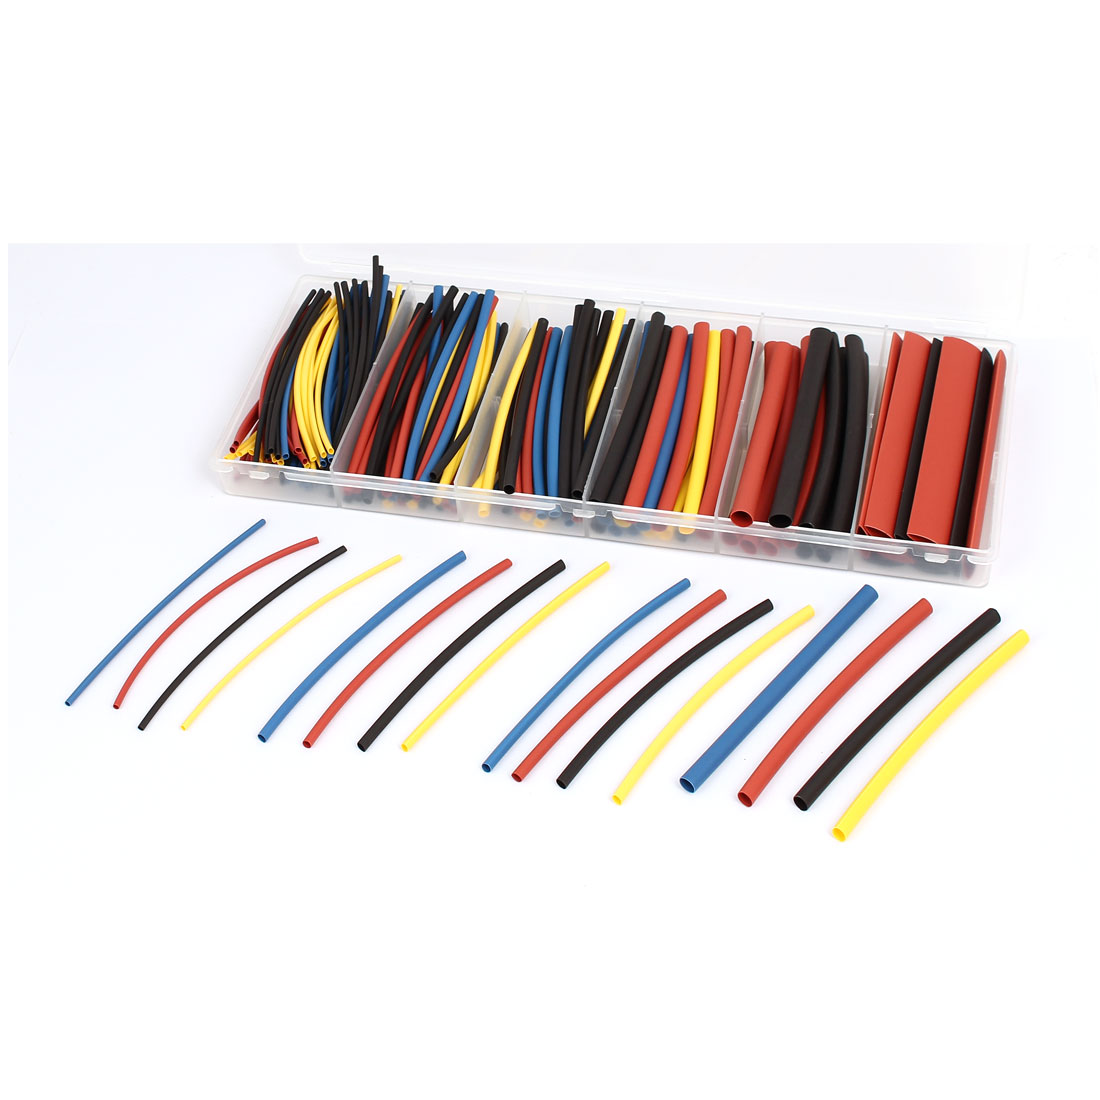 Four Colors Heat Shrink Tube Wire Wrap Cable Sleeve Sets 6 Sizes w Case 160pcs